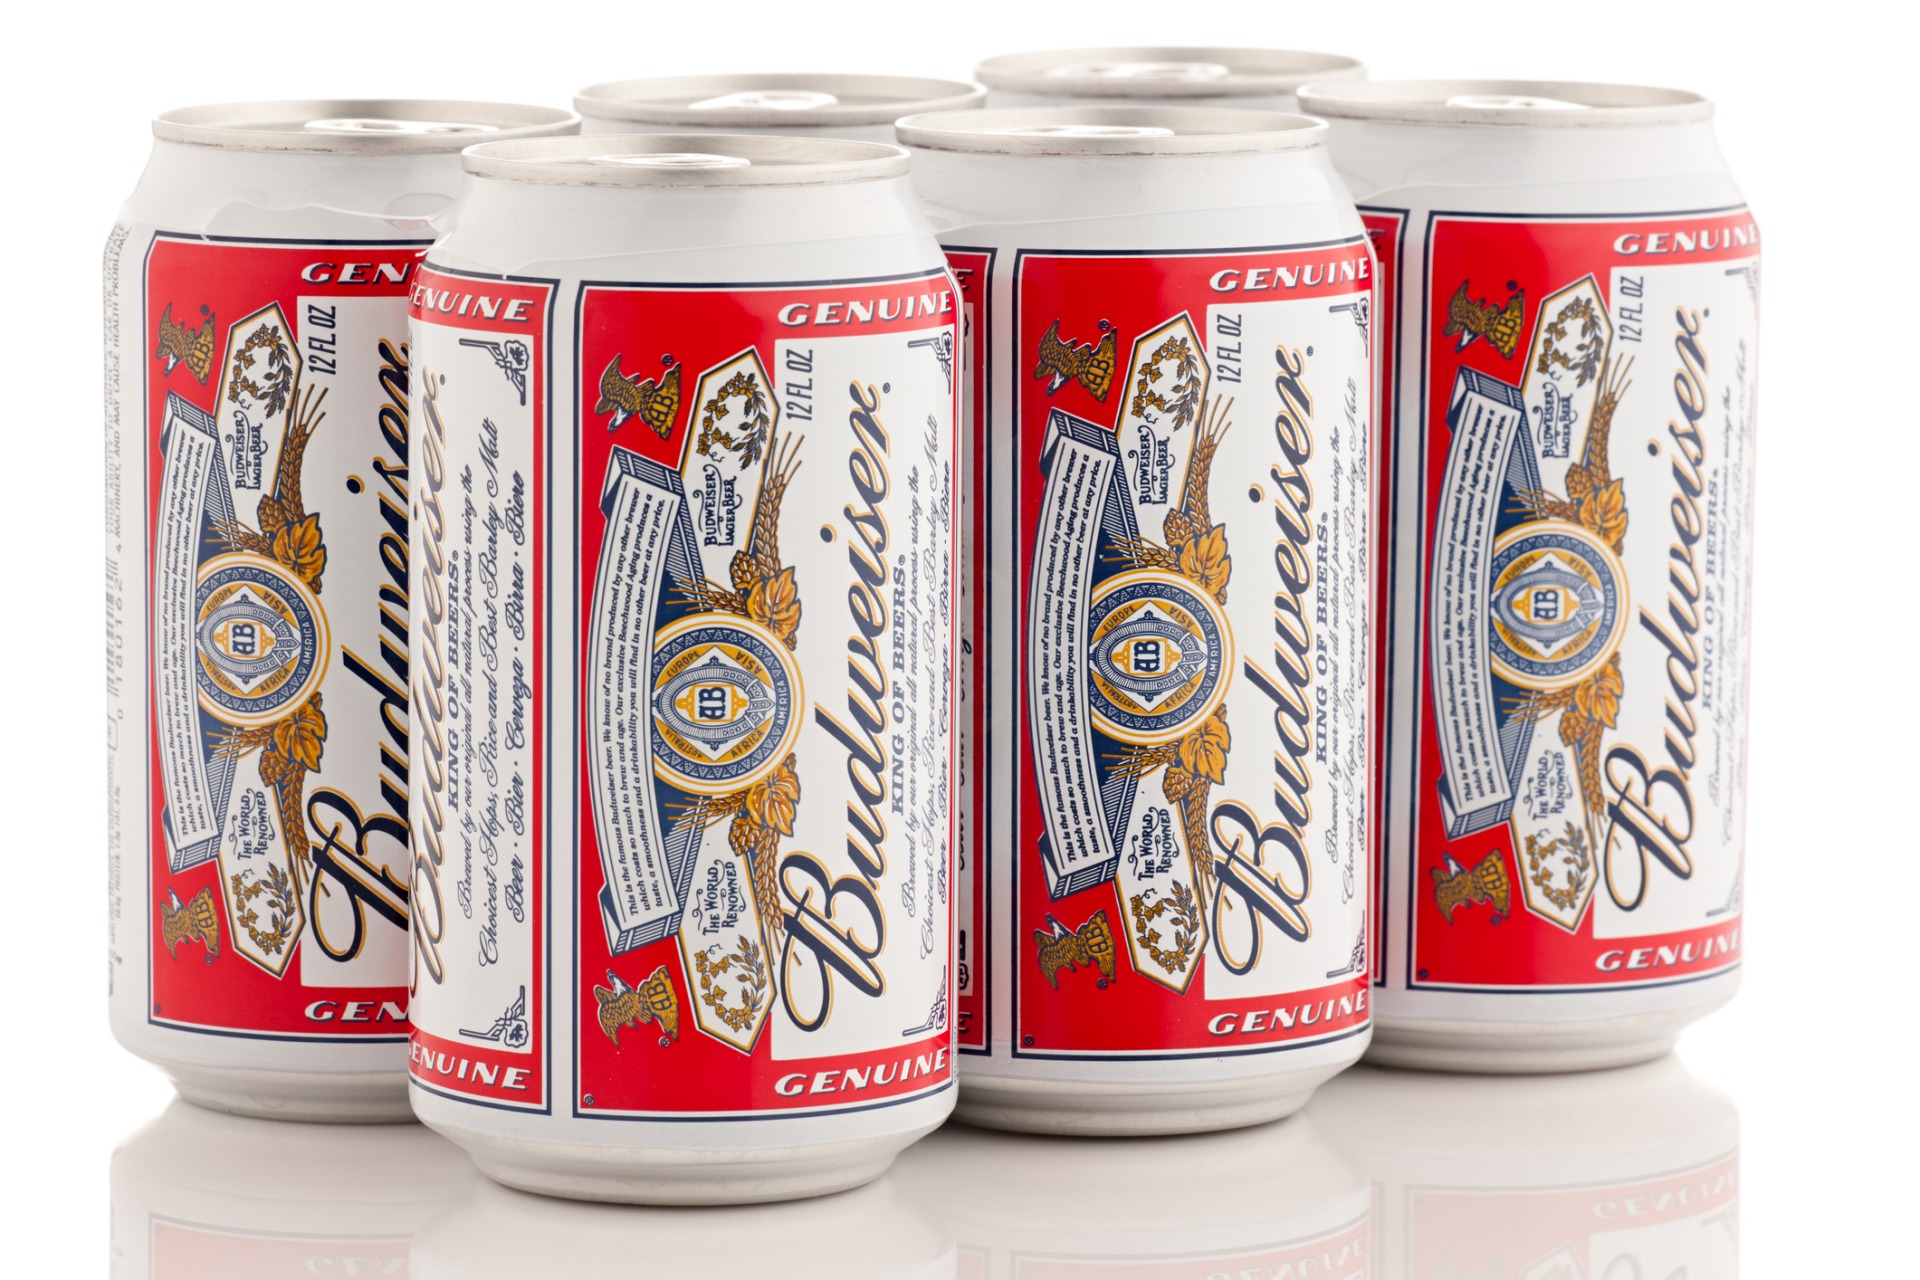 Fox News Budweiser Branded Meats Are Coming To Stores This Summer Budweiser Budweiser Beer Beer Label